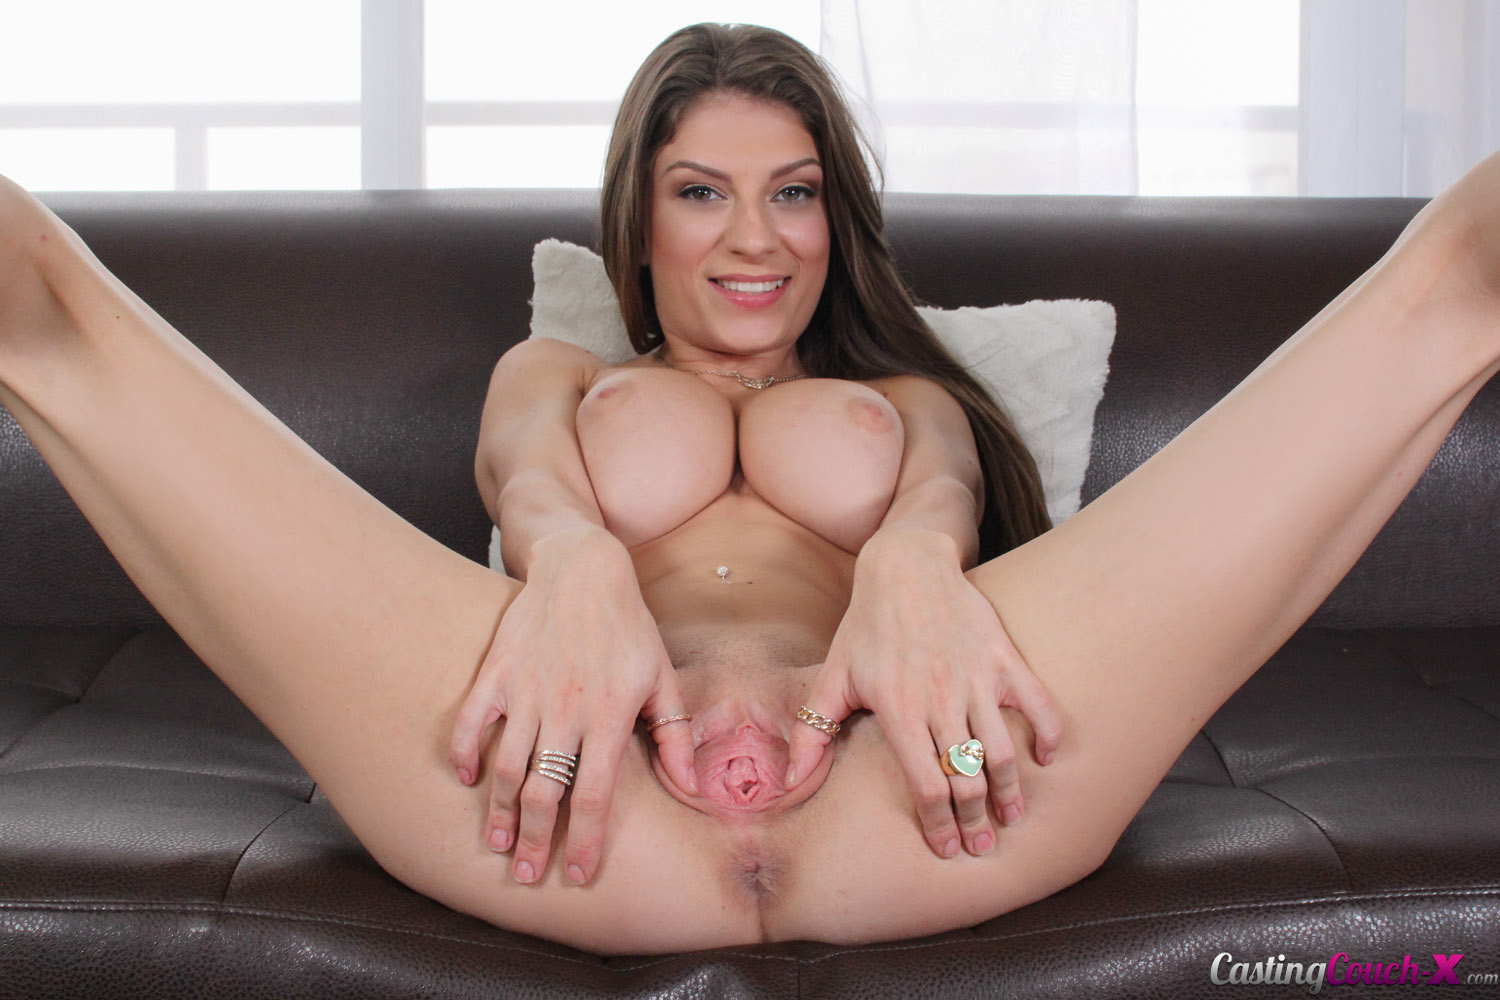 First class pov alix lynx takes a huge fat cock like a champ 8